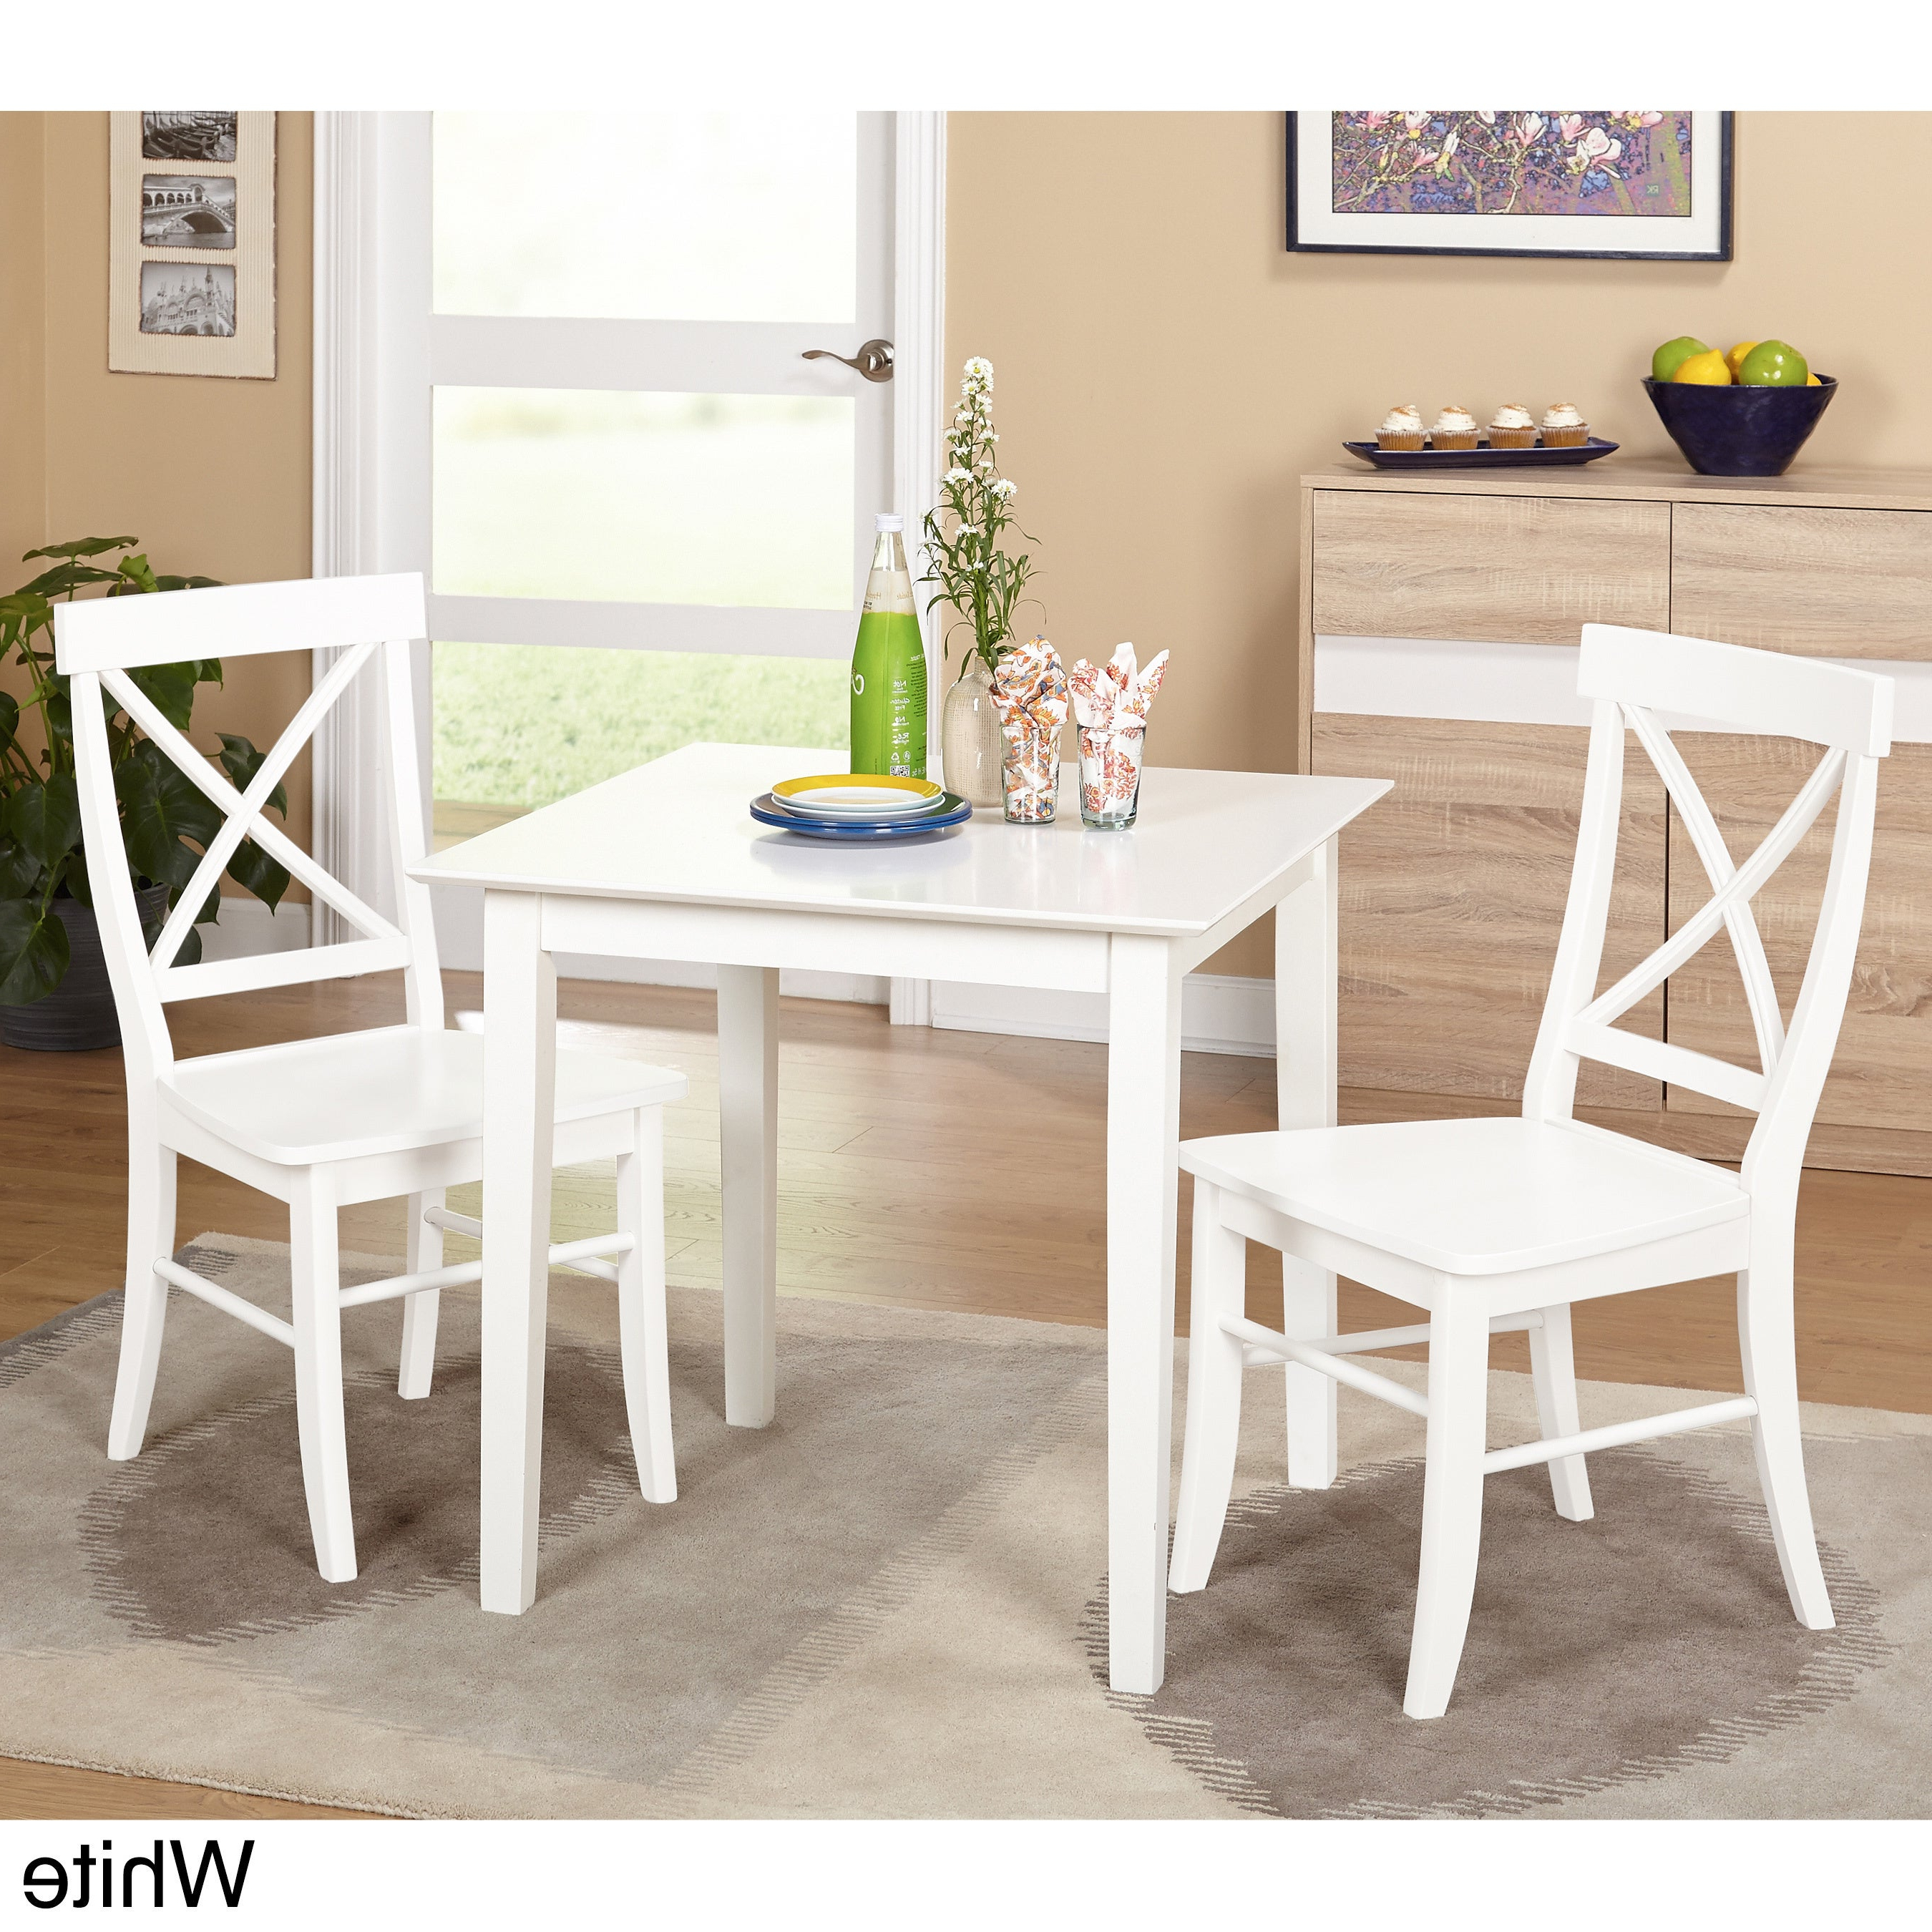 Buy 3 Piece Sets Kitchen & Dining Room Sets Online At Overstock Throughout Well Known Frida 3 Piece Dining Table Sets (Gallery 15 of 20)